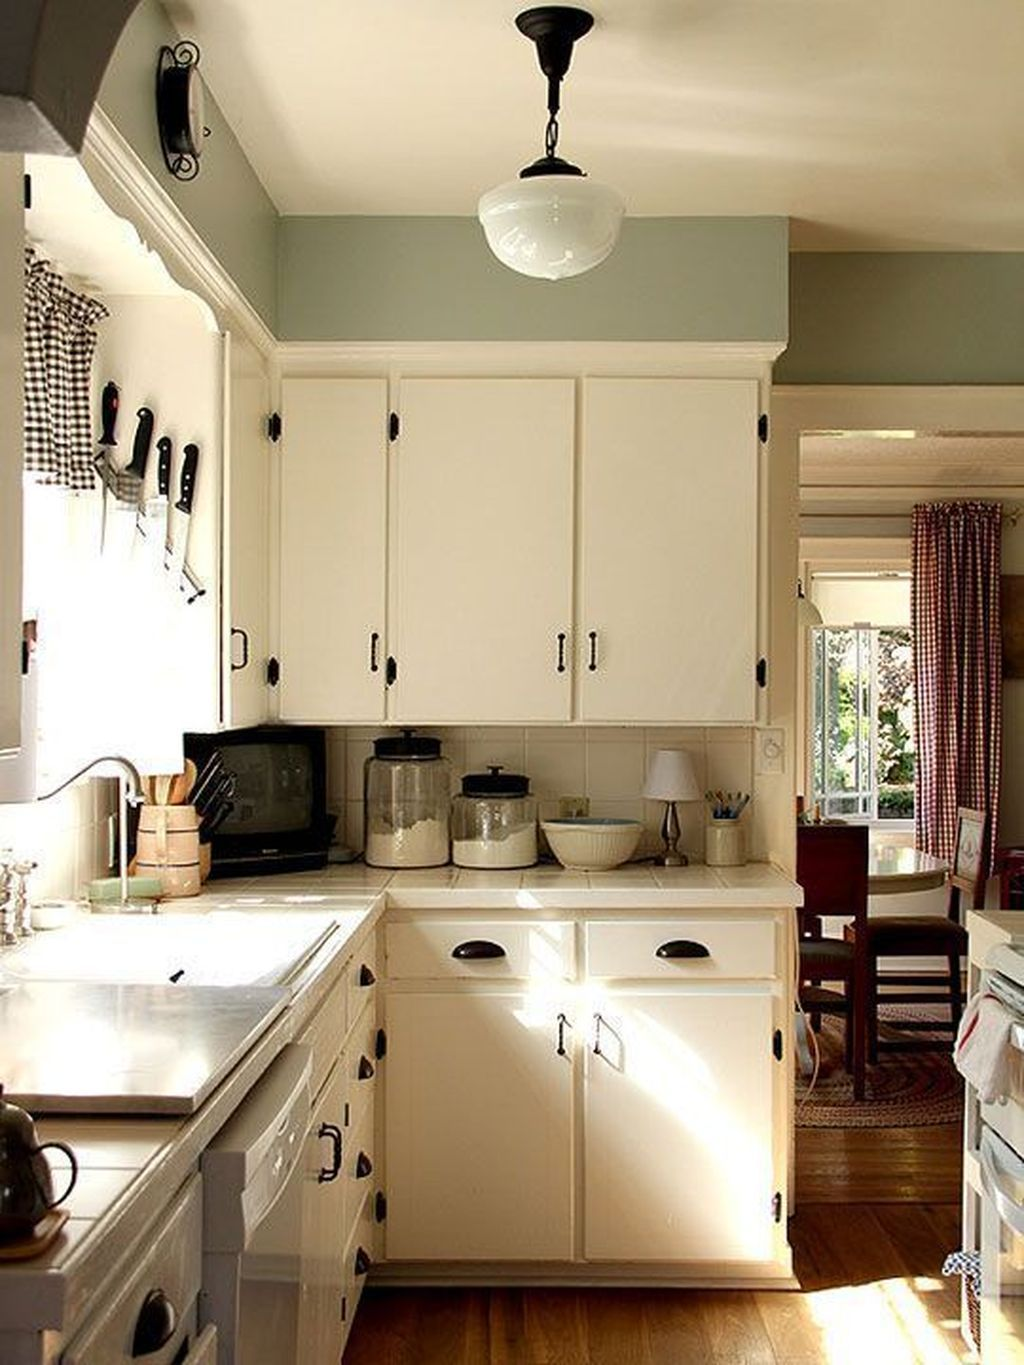 39 Attractive Small Kitchen Decorating Ideas On A Budget